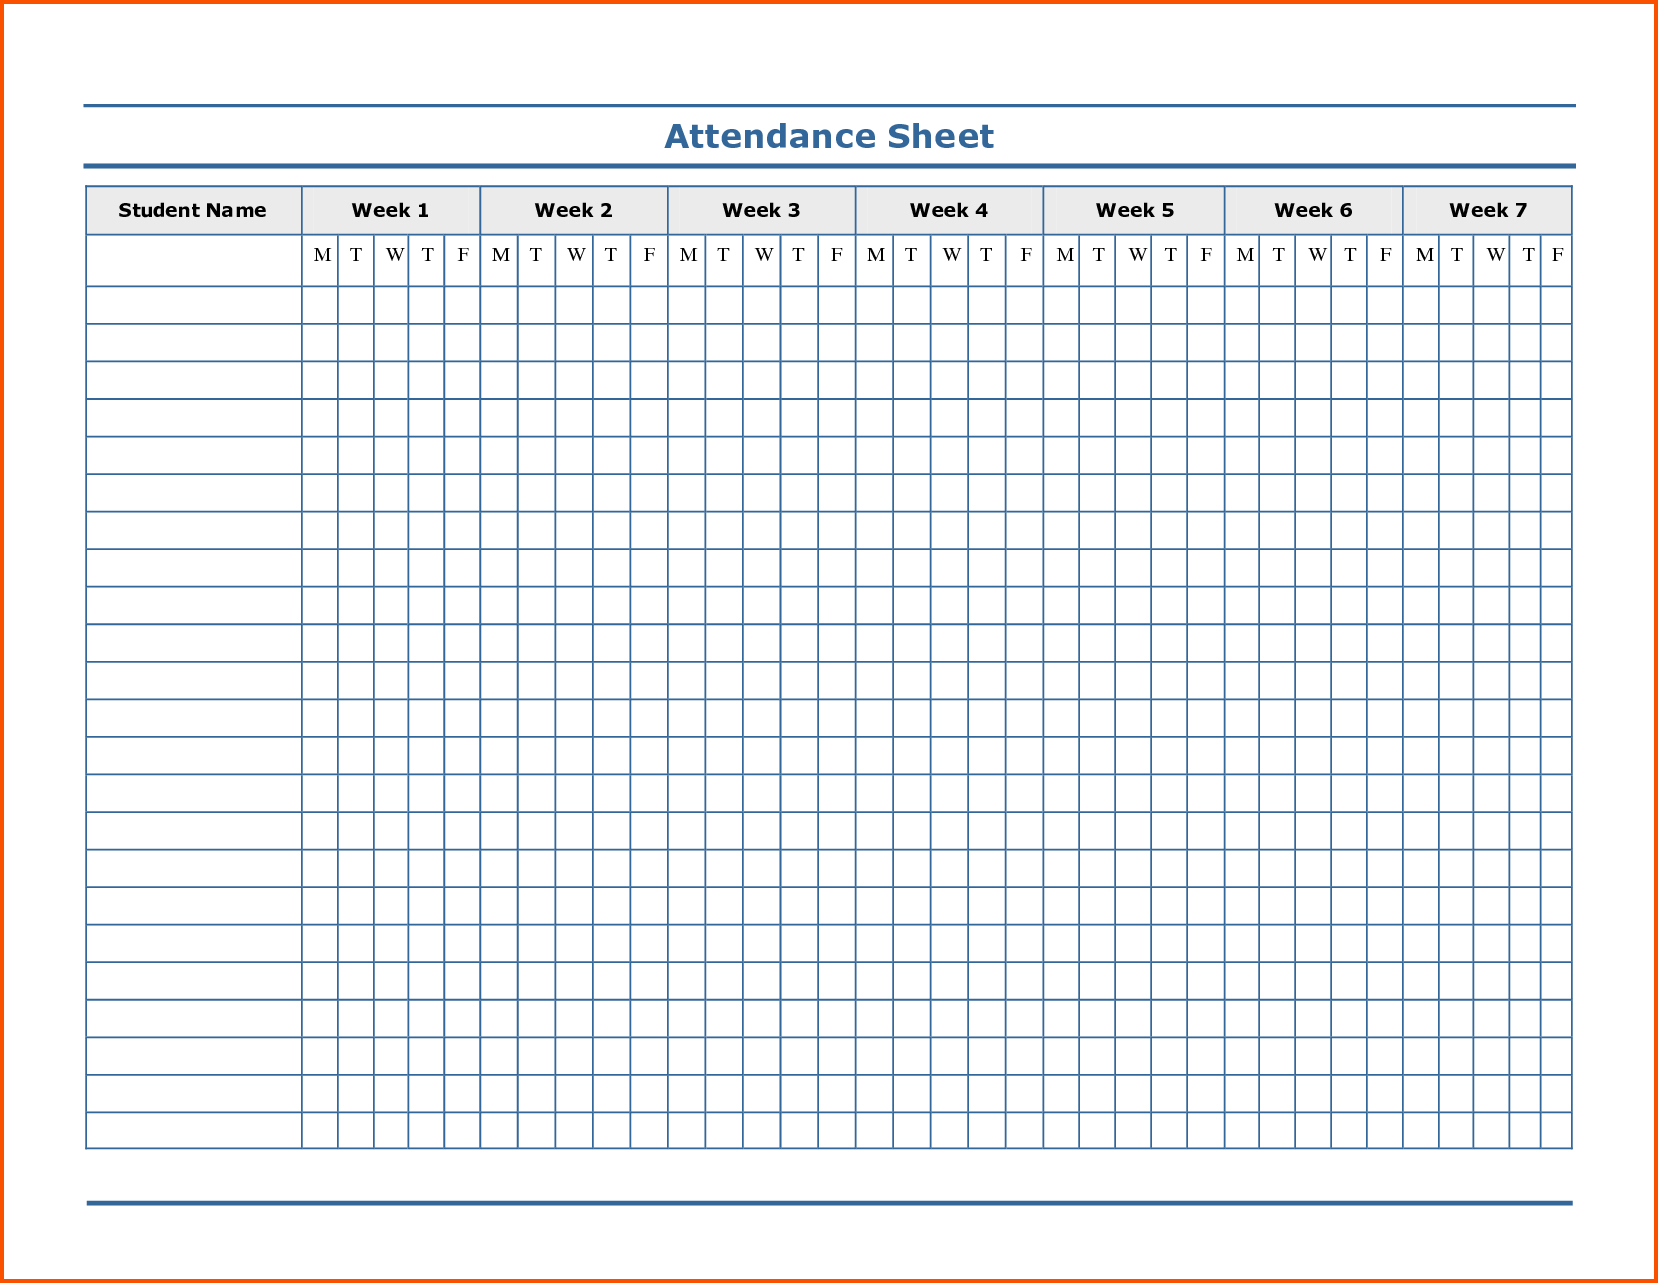 Free Printable Attendance Forms For Teachers – Jowo - Free Printable Attendance Forms For Teachers